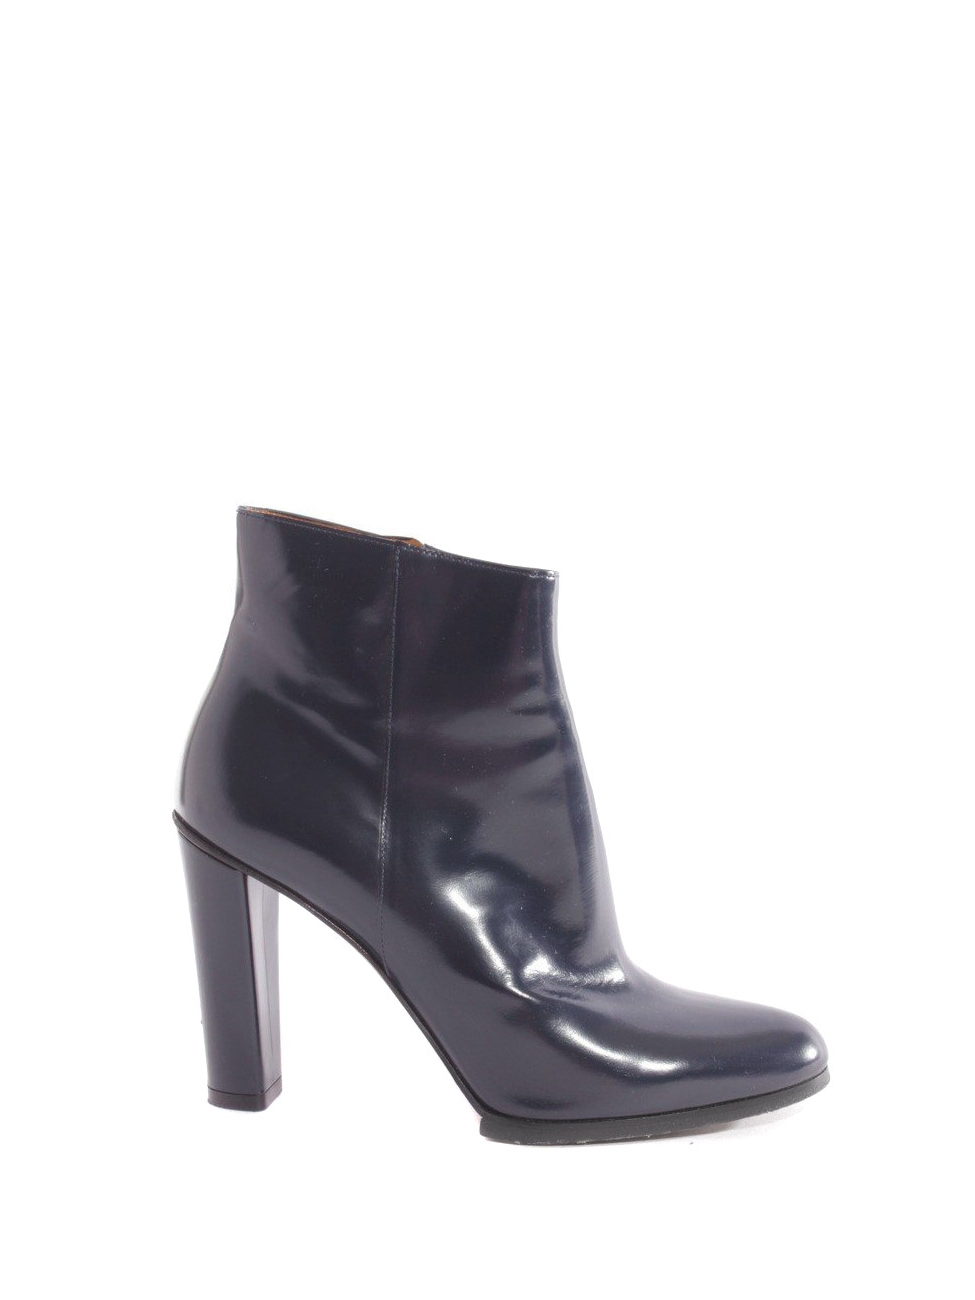 isabel marant suede boots sale 36